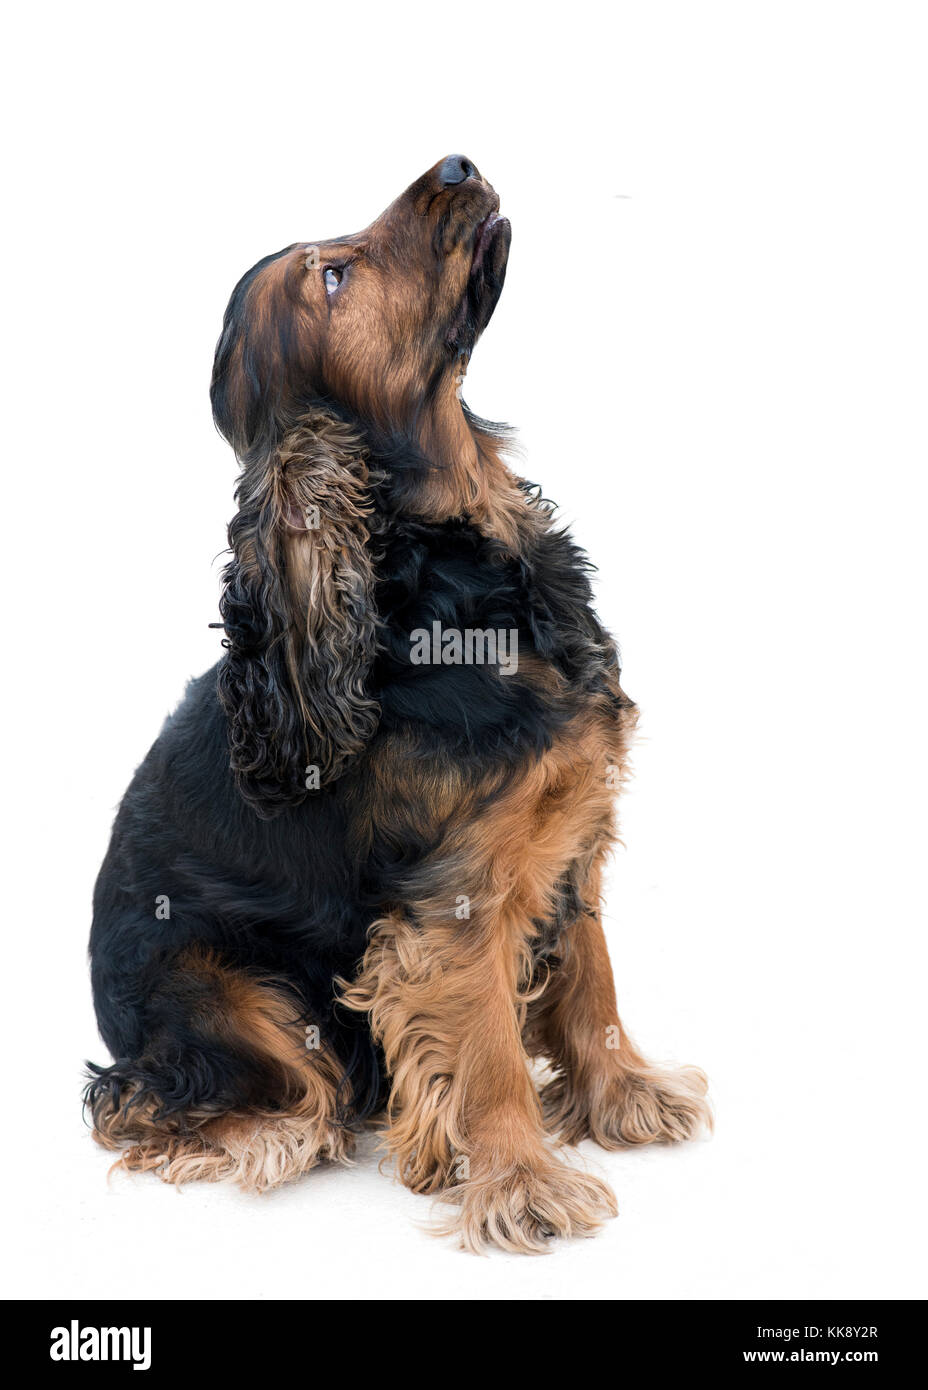 obedient pedigree cocker spaniel  sat  looking up  isolated on a white background - Stock Image